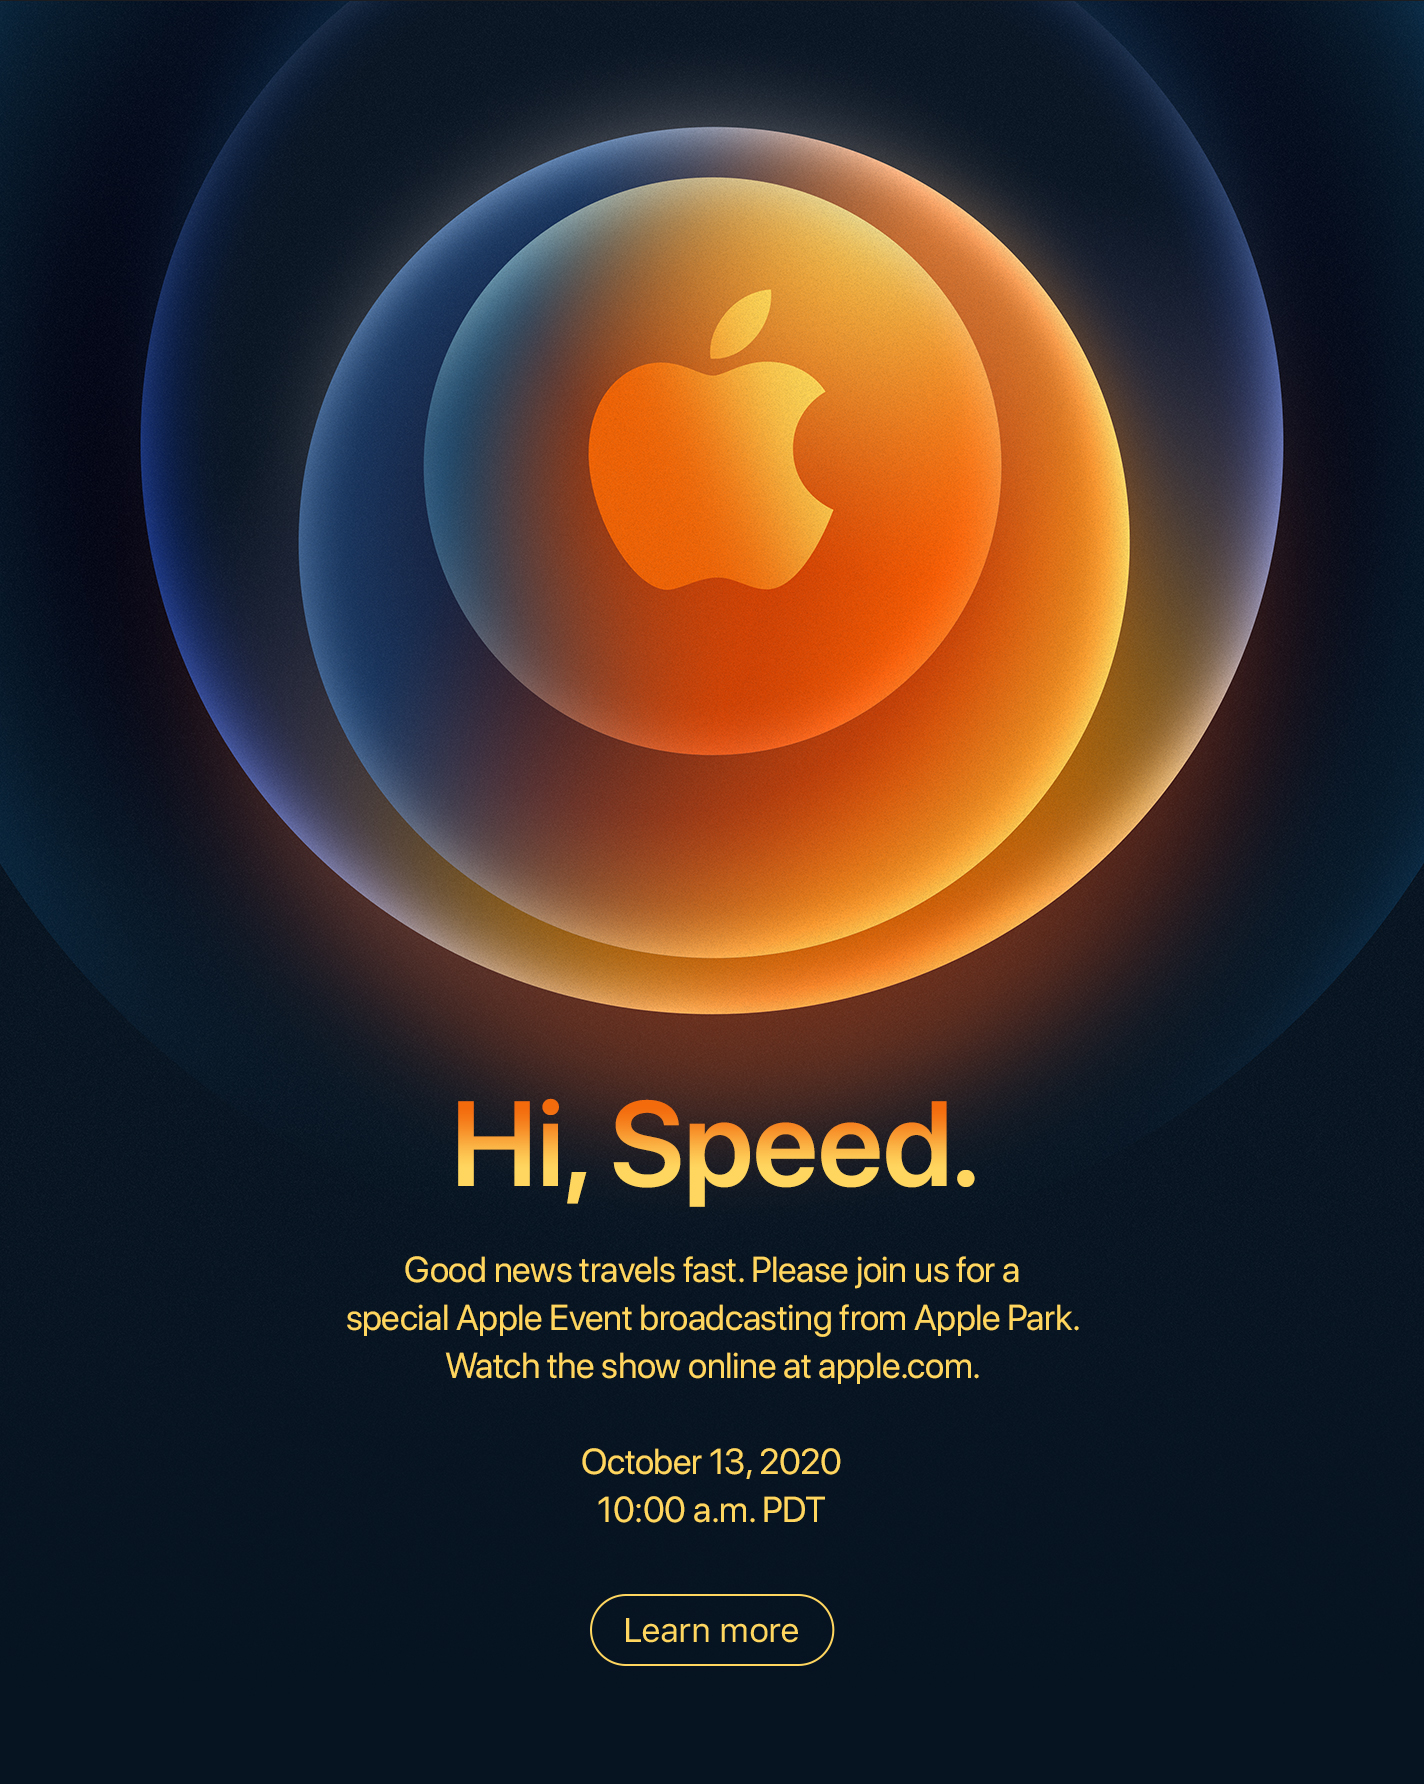 Hi, Speed.  Good news travels fast.  Please join us for a special Apple Event broadcasting from Apple Park. Watch the show online at apple.com.  October 13, 2020 10:00 a.m. PDT  Learn more